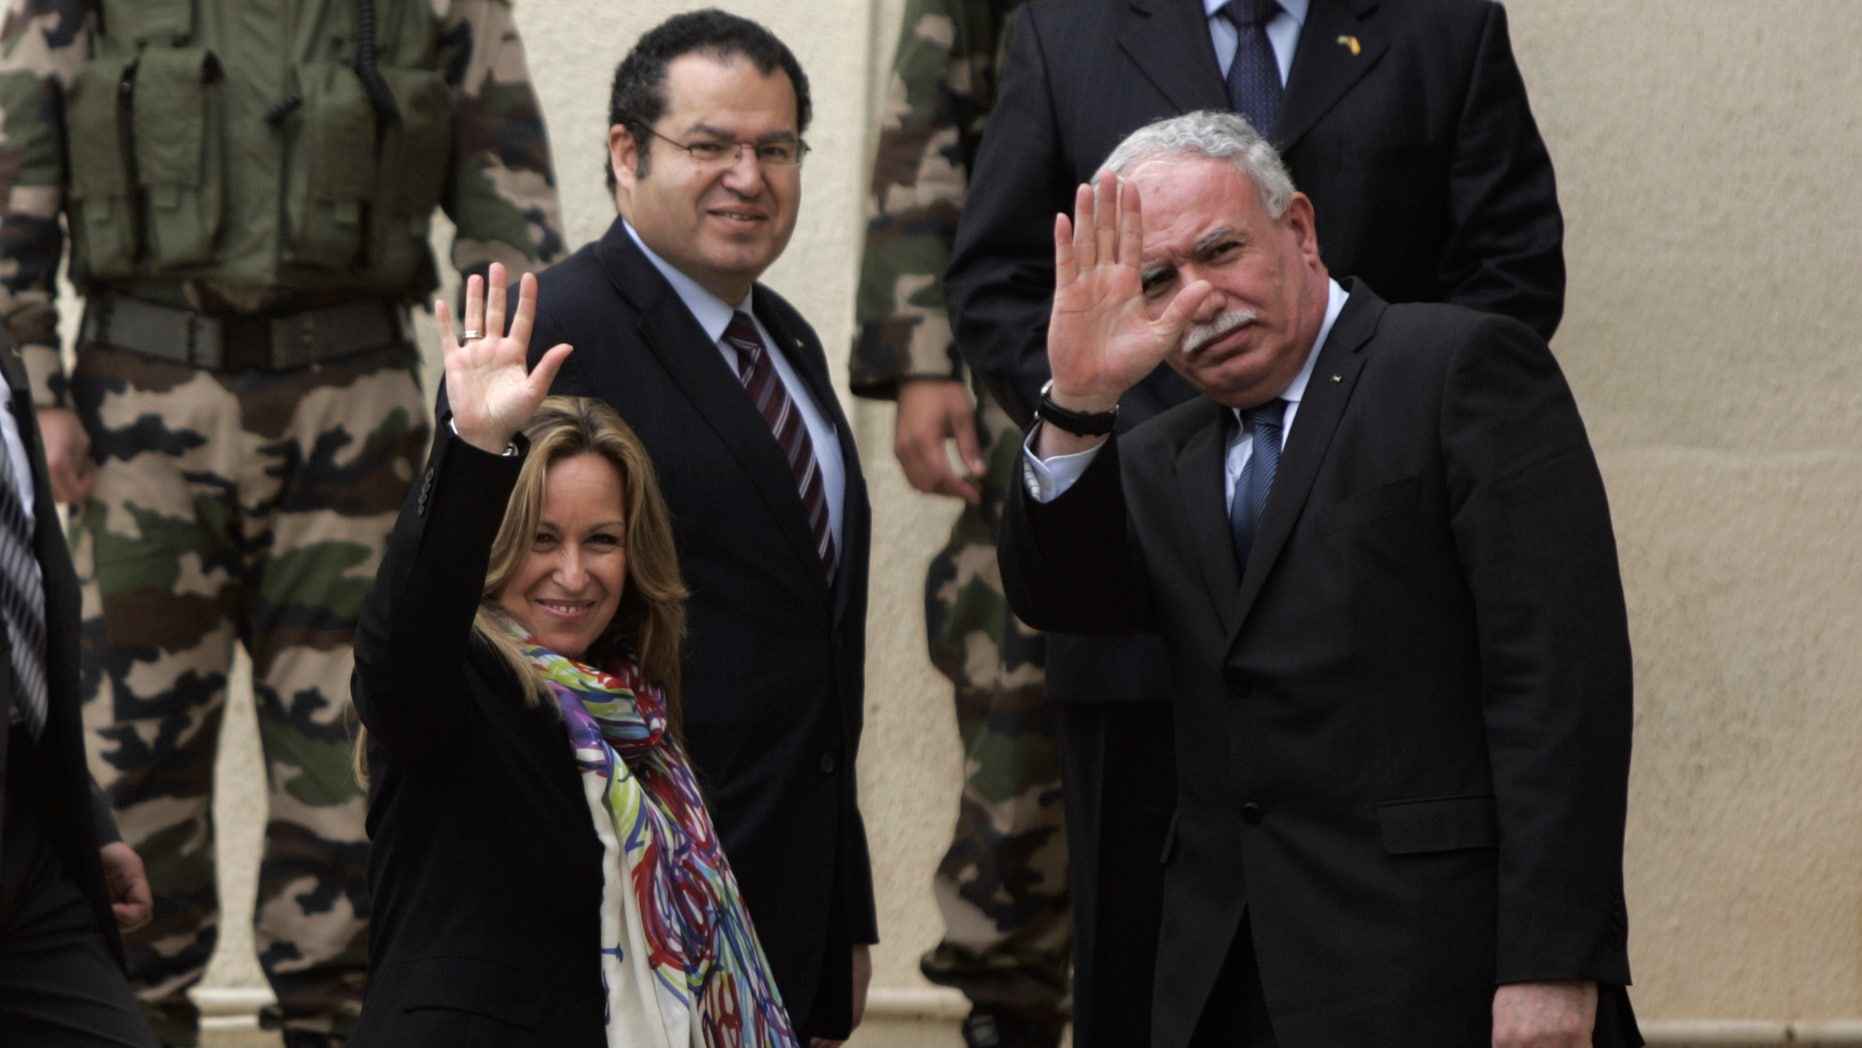 Feb. 9: Spain's Foreign Minister Trinidad Jimenez, left, waves to media members with her Palestinian counterpart Riad Malki, right, as they arrive for a meeting with Palestinian President Mahmoud Abbas, not seen, in the West Bank city of Ramallah.